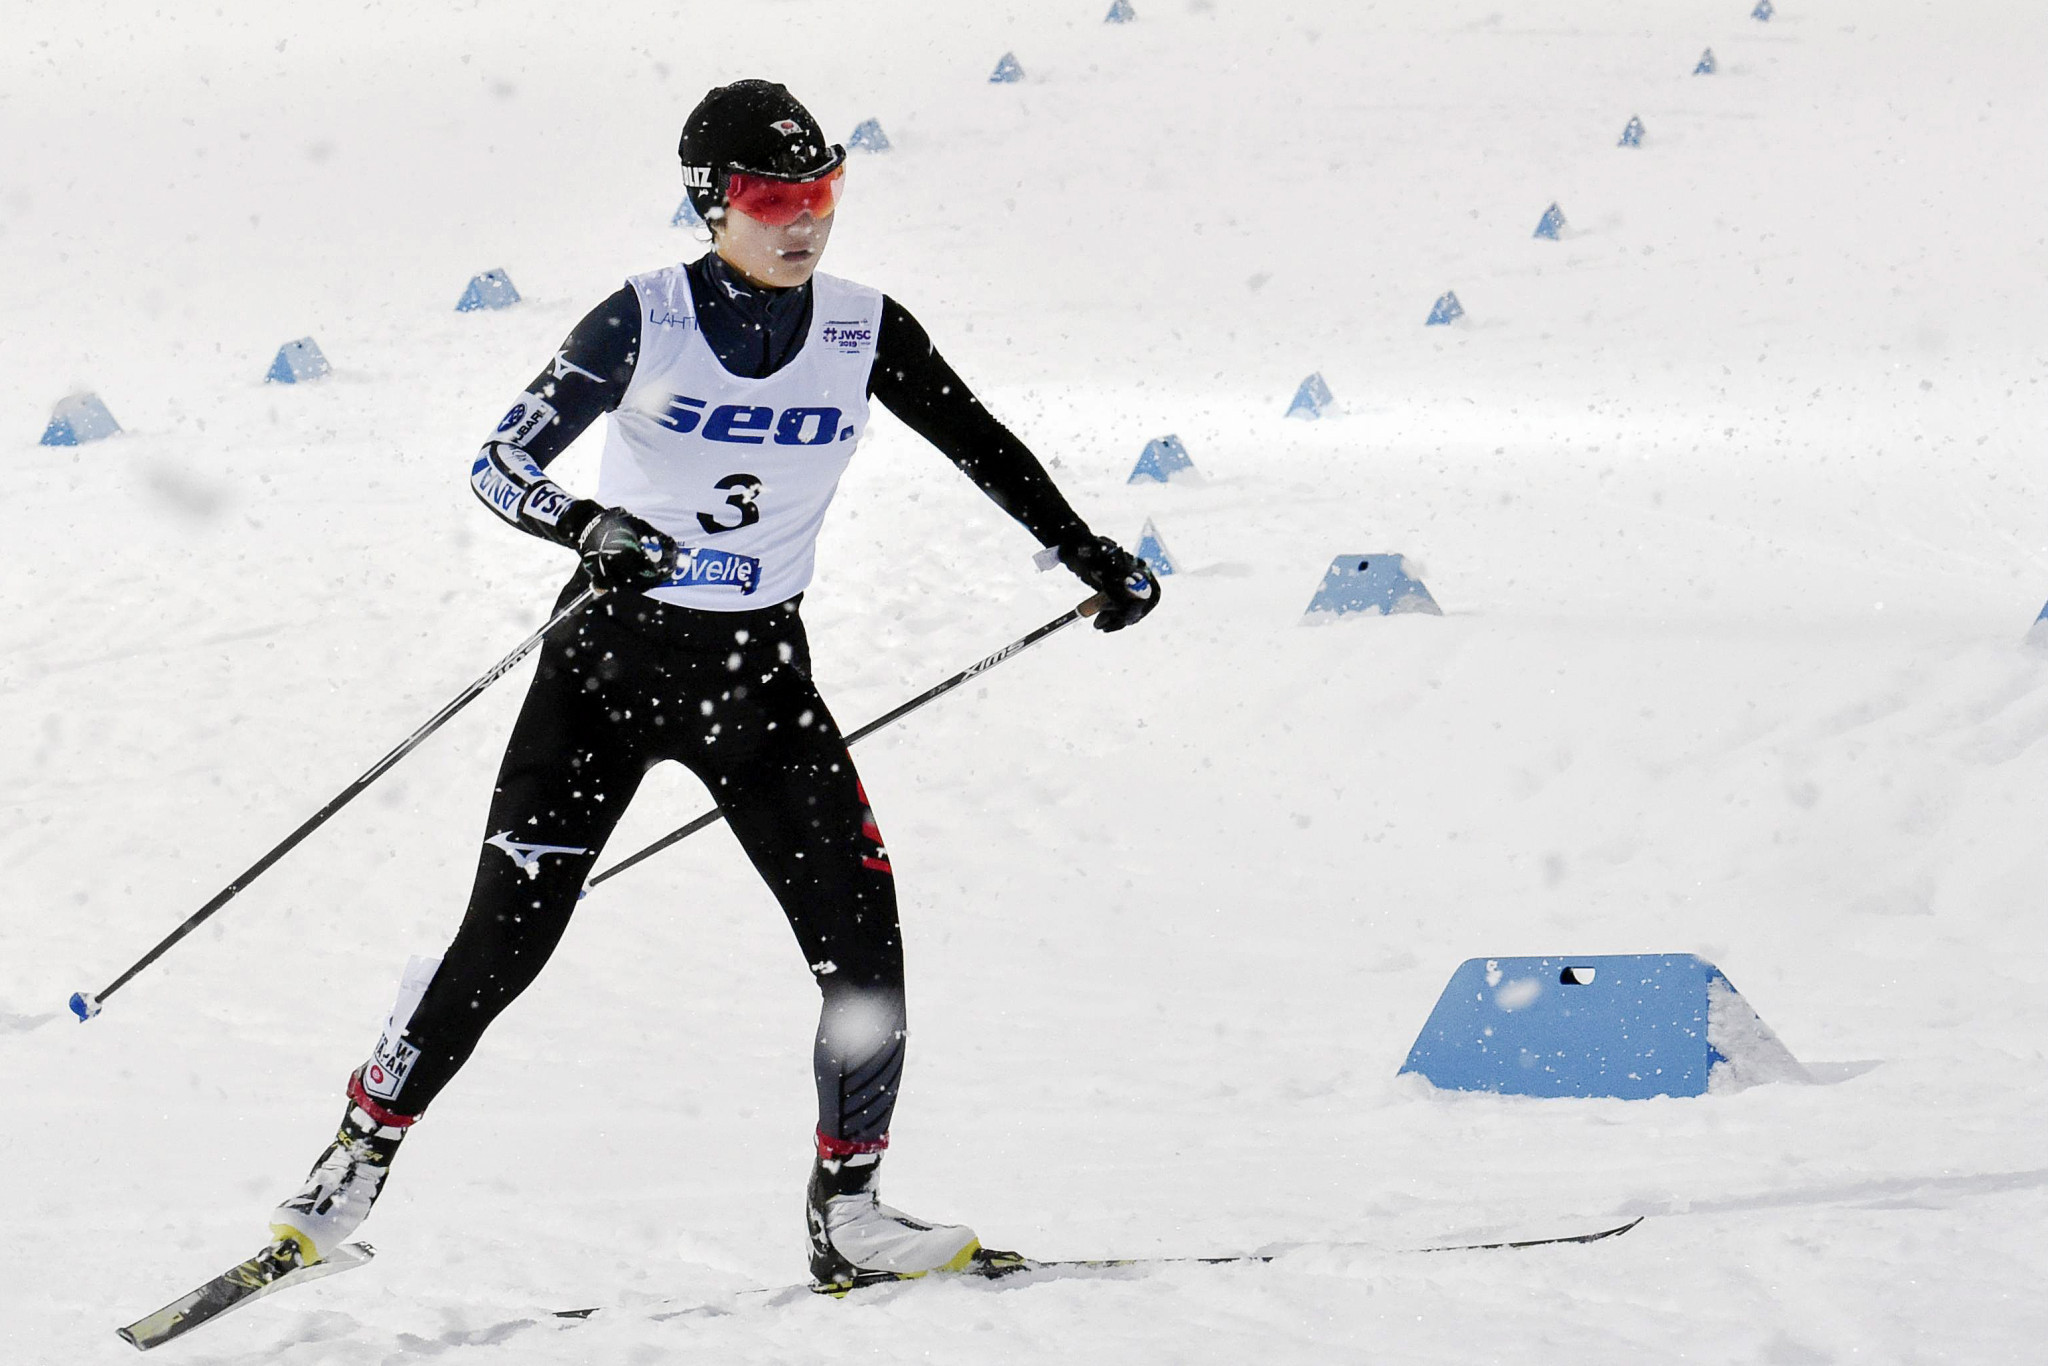 Miyazaki named first-ever female junior world champion in Nordic combined